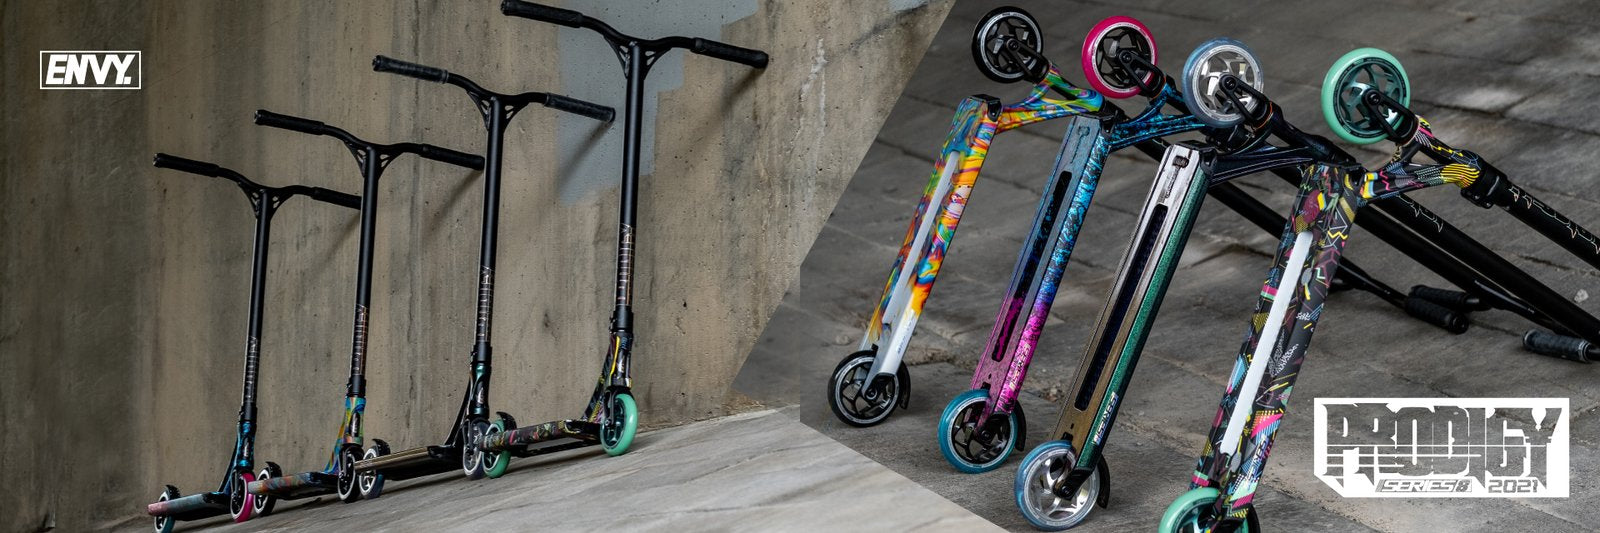 envy prodigy street edition series8 custom scooters